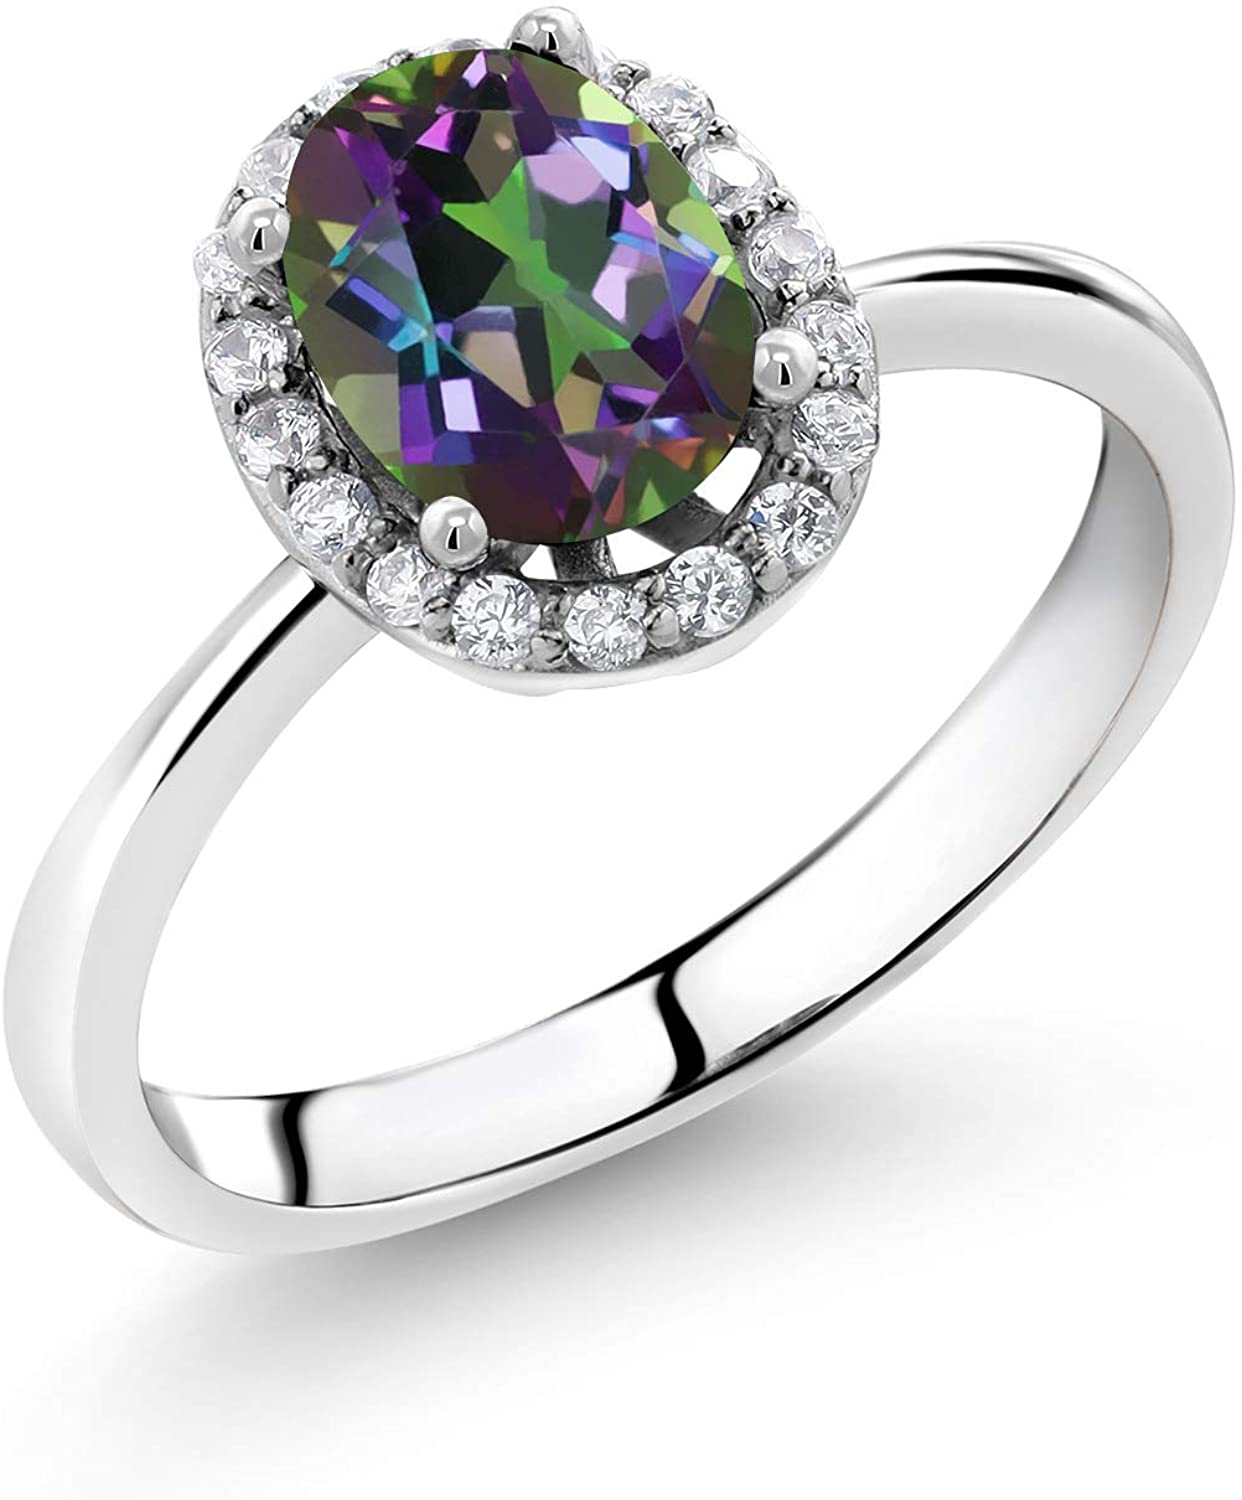 Gem Stone King 925 Sterling Silver Green Mystic Topaz Women Engagement Ring (1.20 Ct Oval Available in size 5, 6, 7, 8, 9)